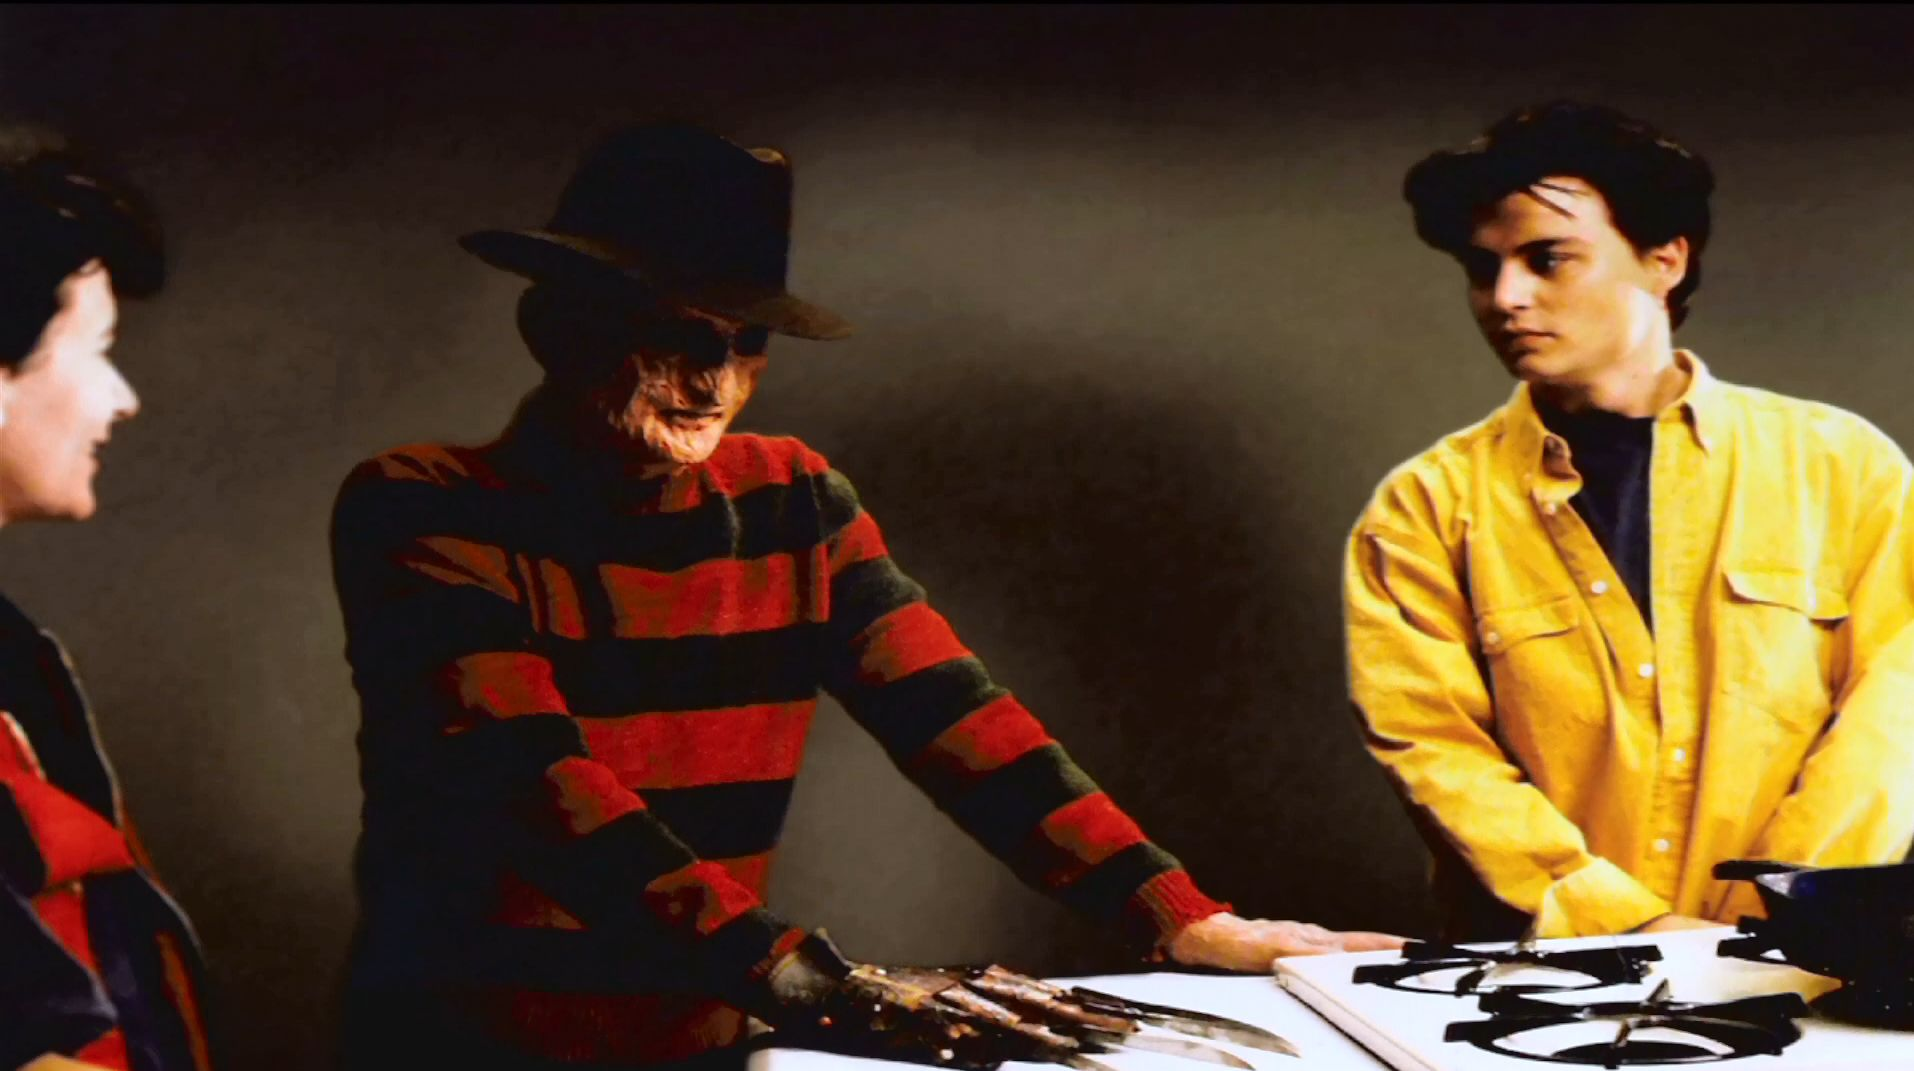 Pin By Spoopy Artist On Horror Nightmare On Elm Street A